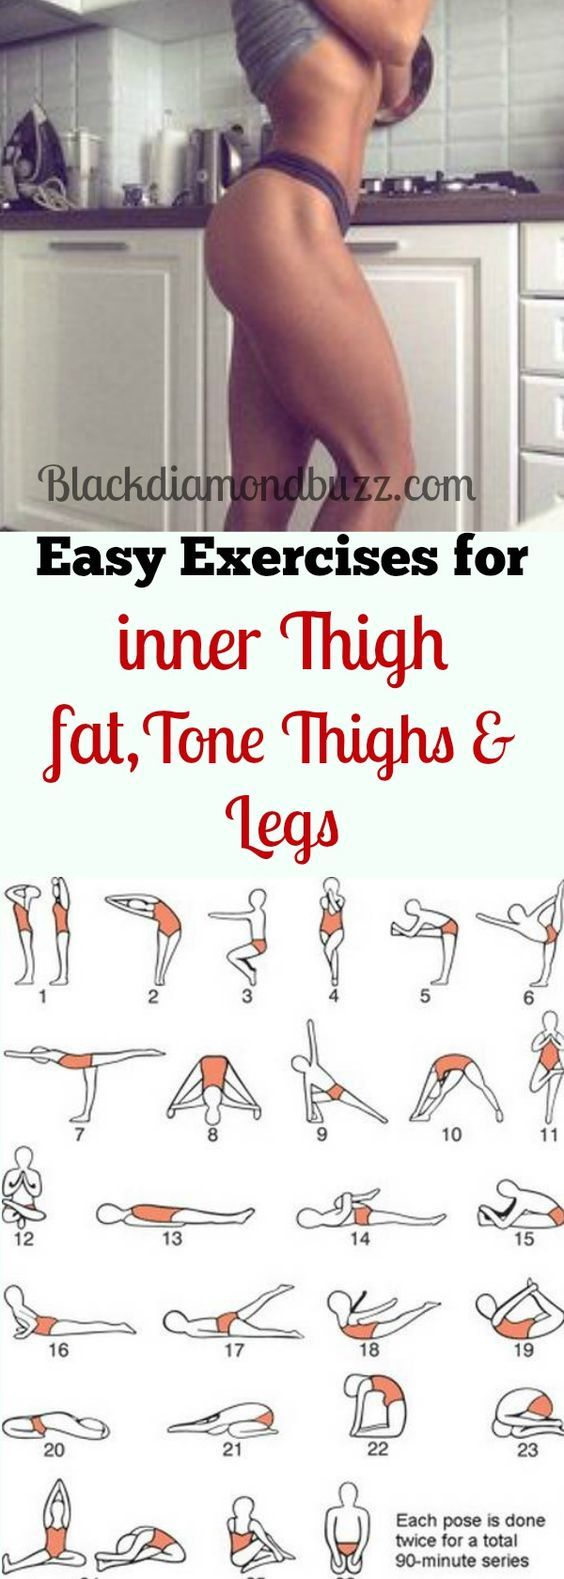 Lose Thigh Fat: 11 Minutes Inner & Outer Leg Workout (Meal Plan Too)